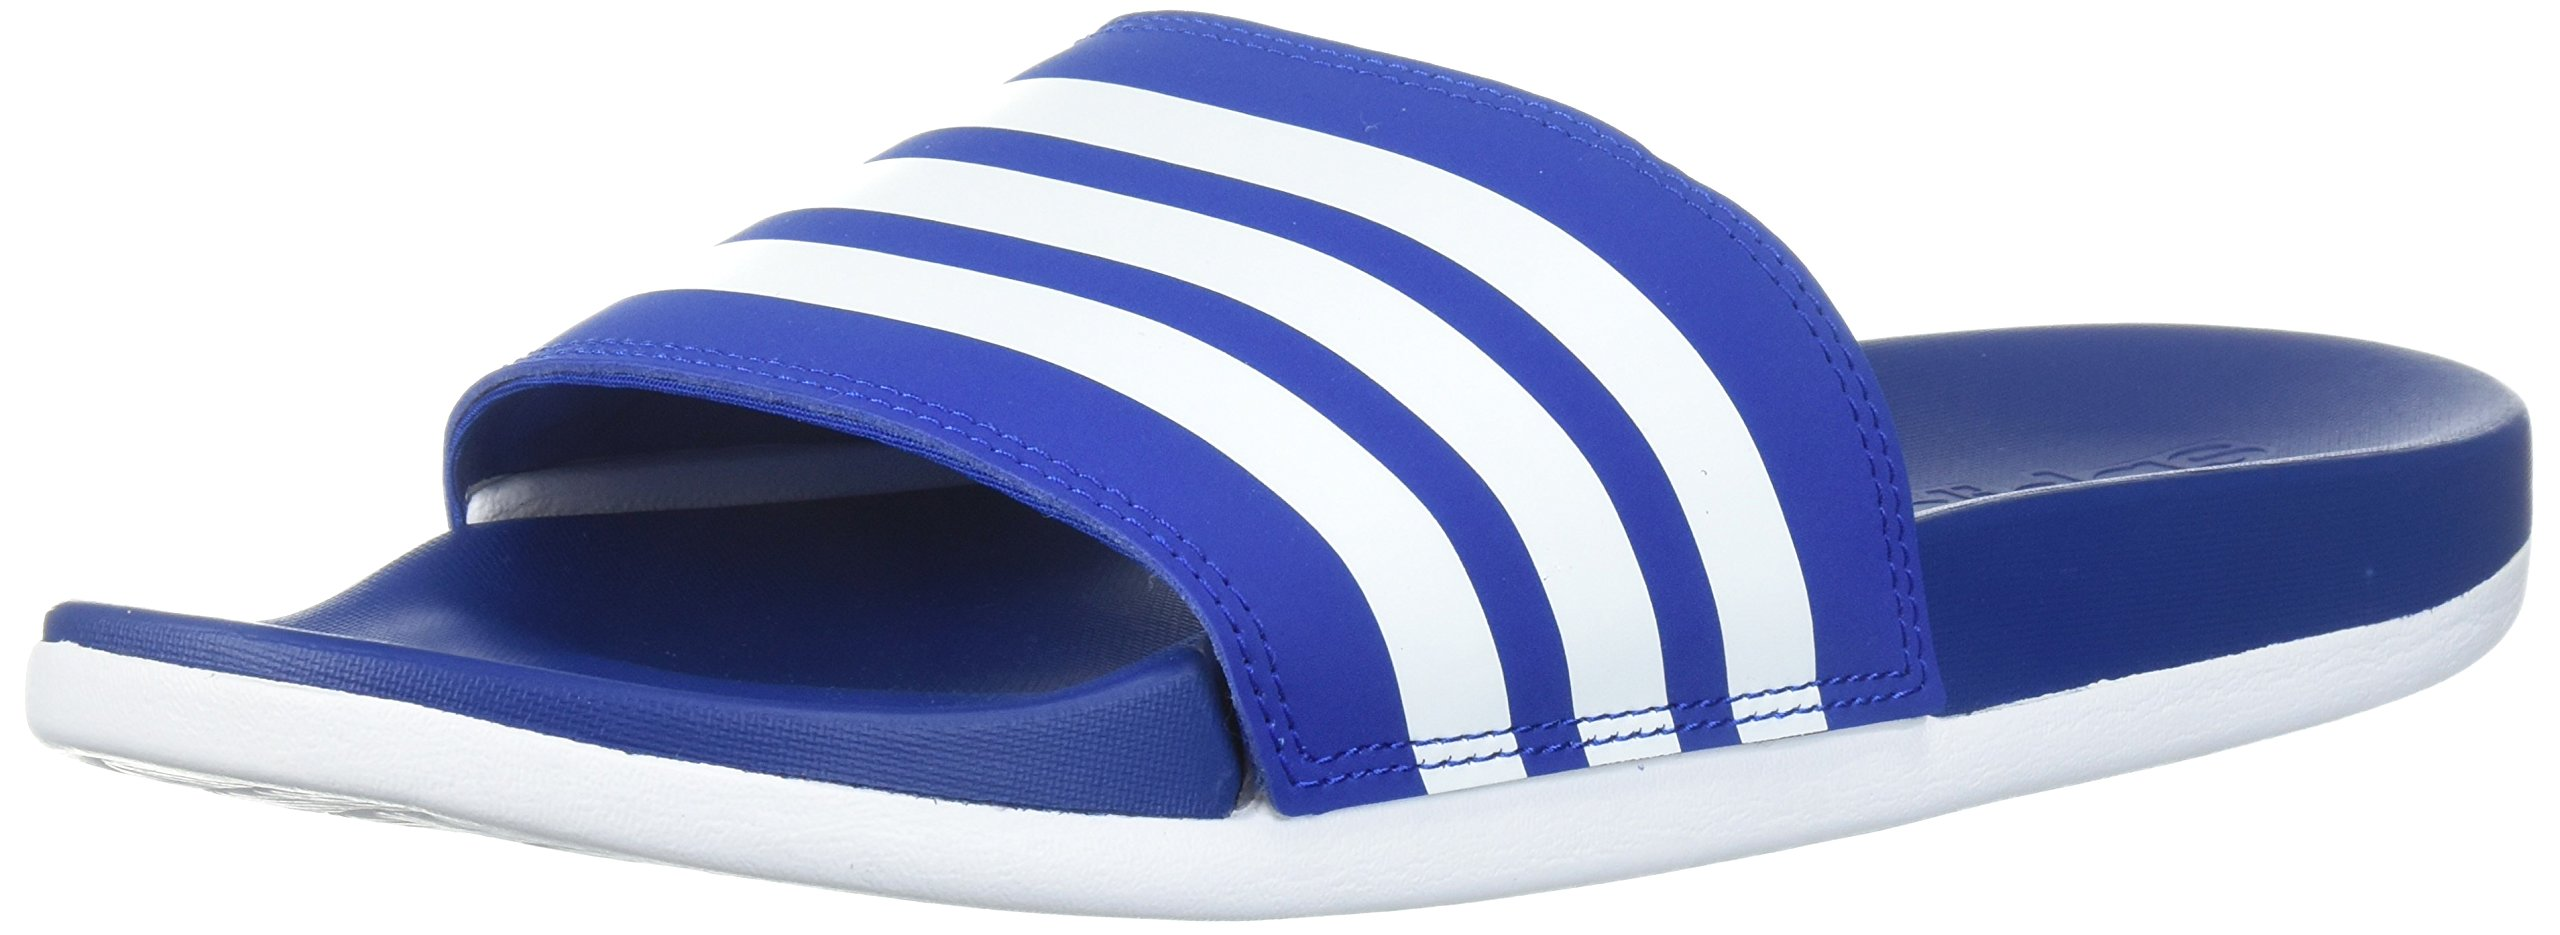 adidas Men's Adilette Comfort Slide Sandal White/Collegiate Royal, 4 M US